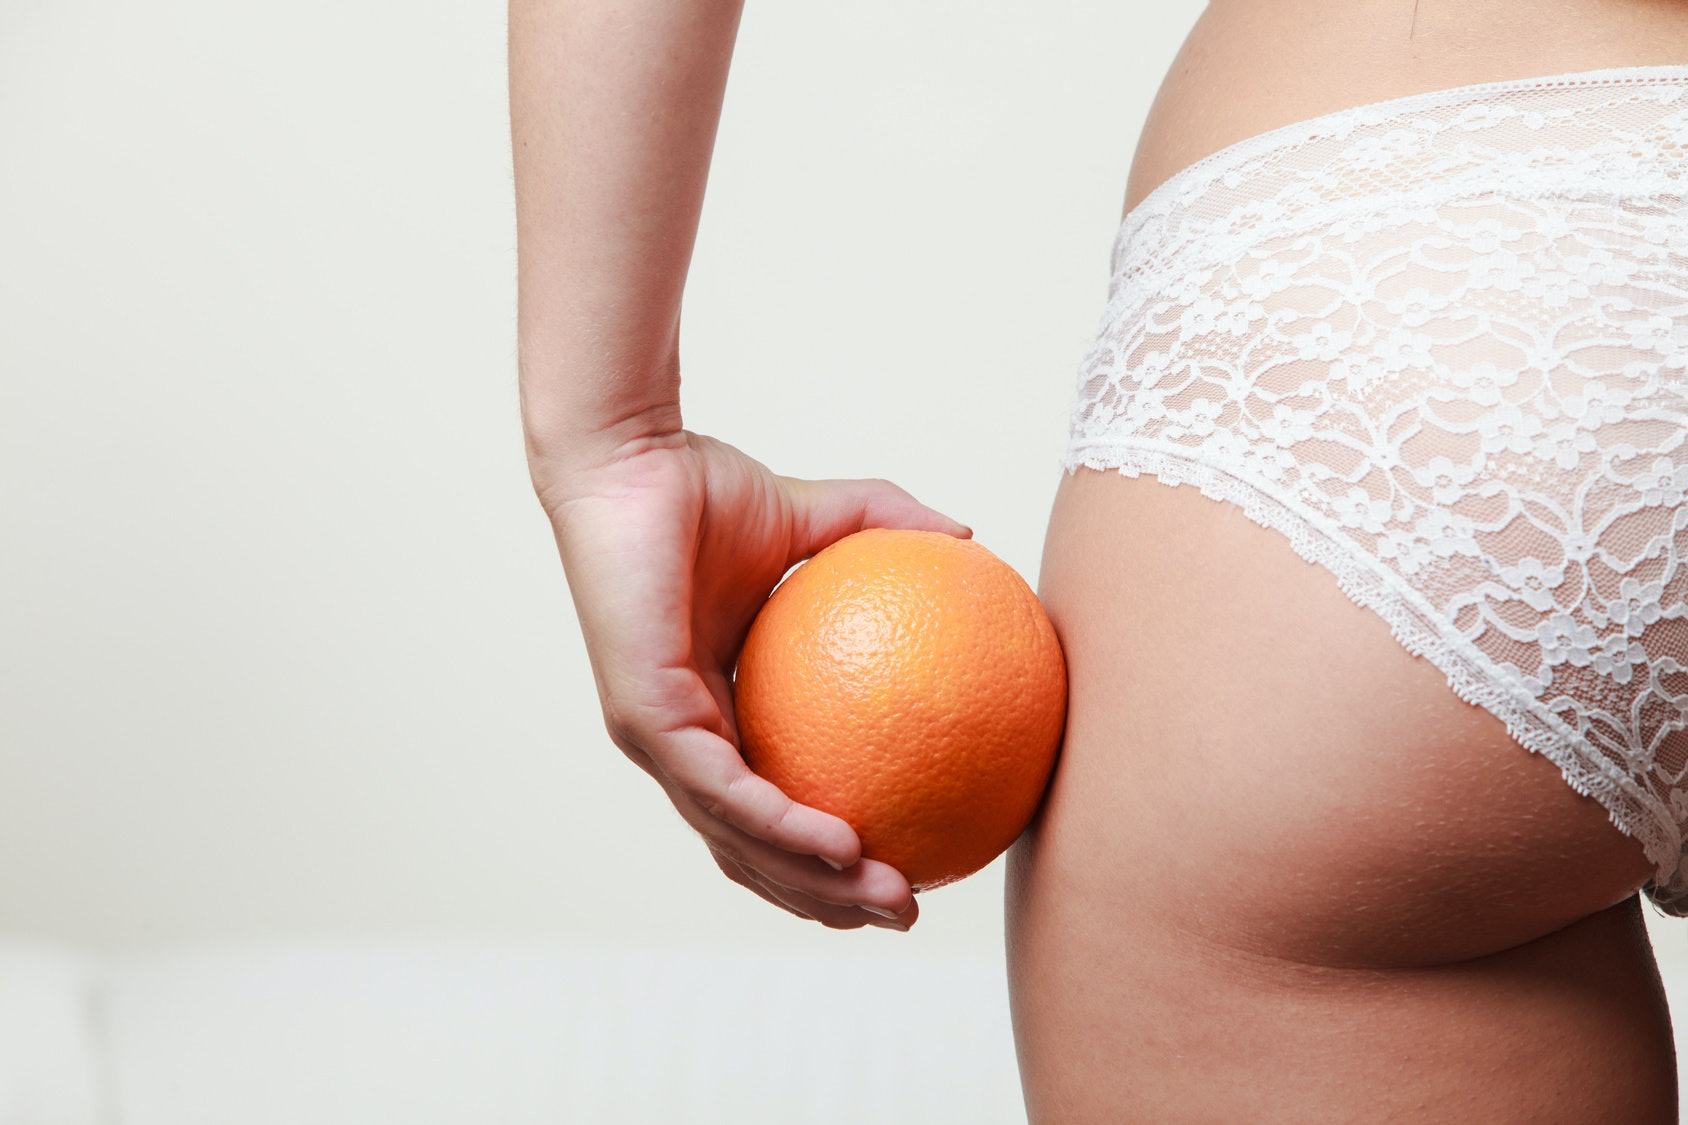 Pictures of womens butt holes